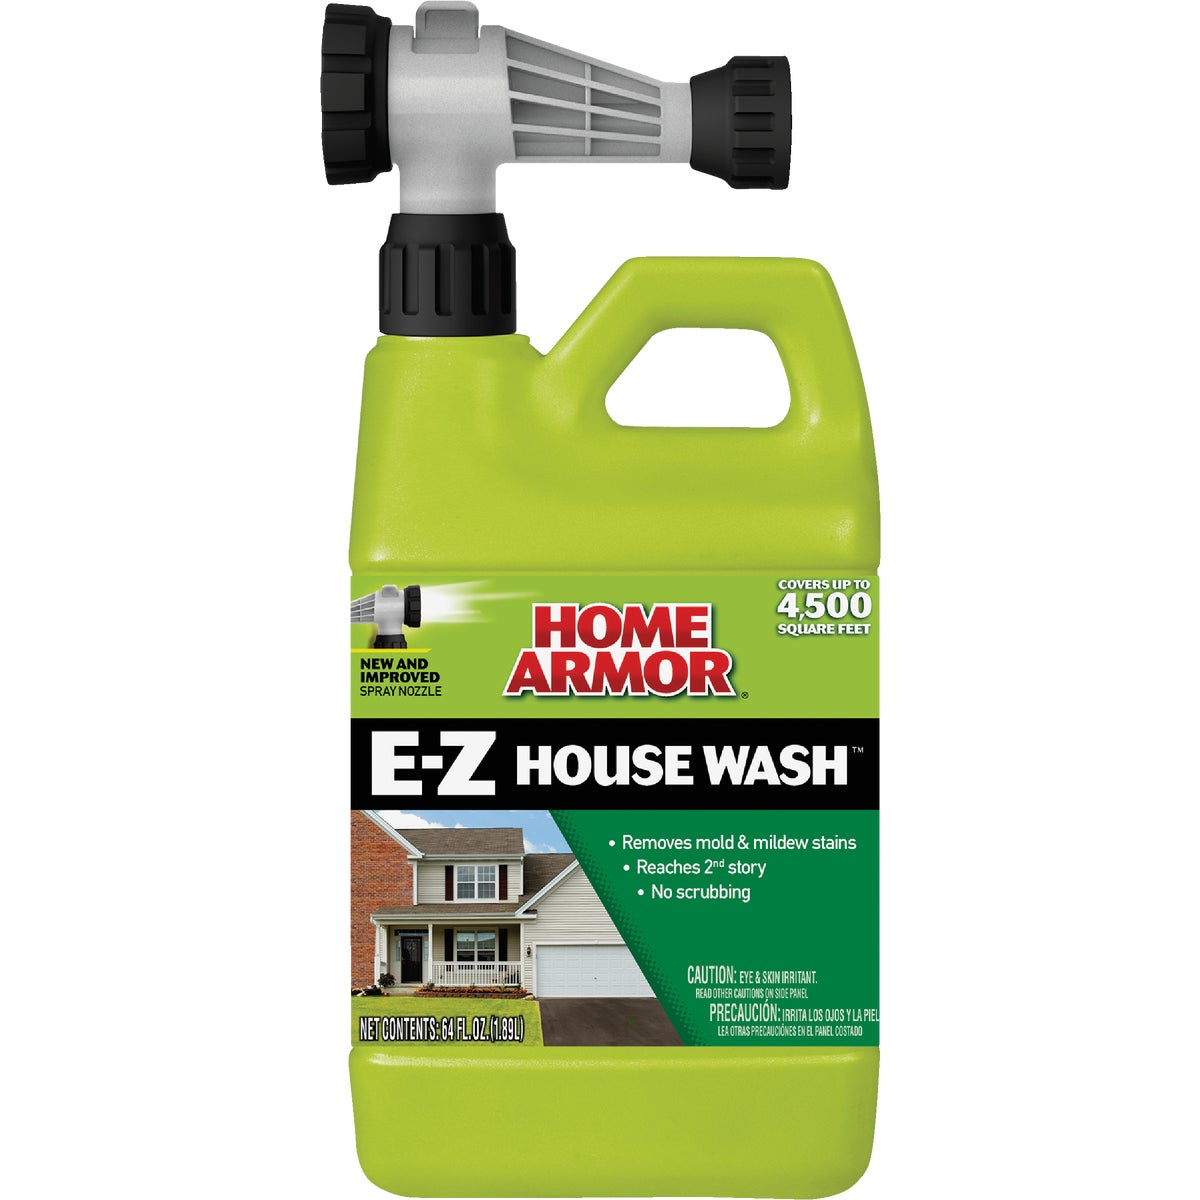 E-Z 56 OZ HOUSE WASH - FG511 by Wm Barr Company